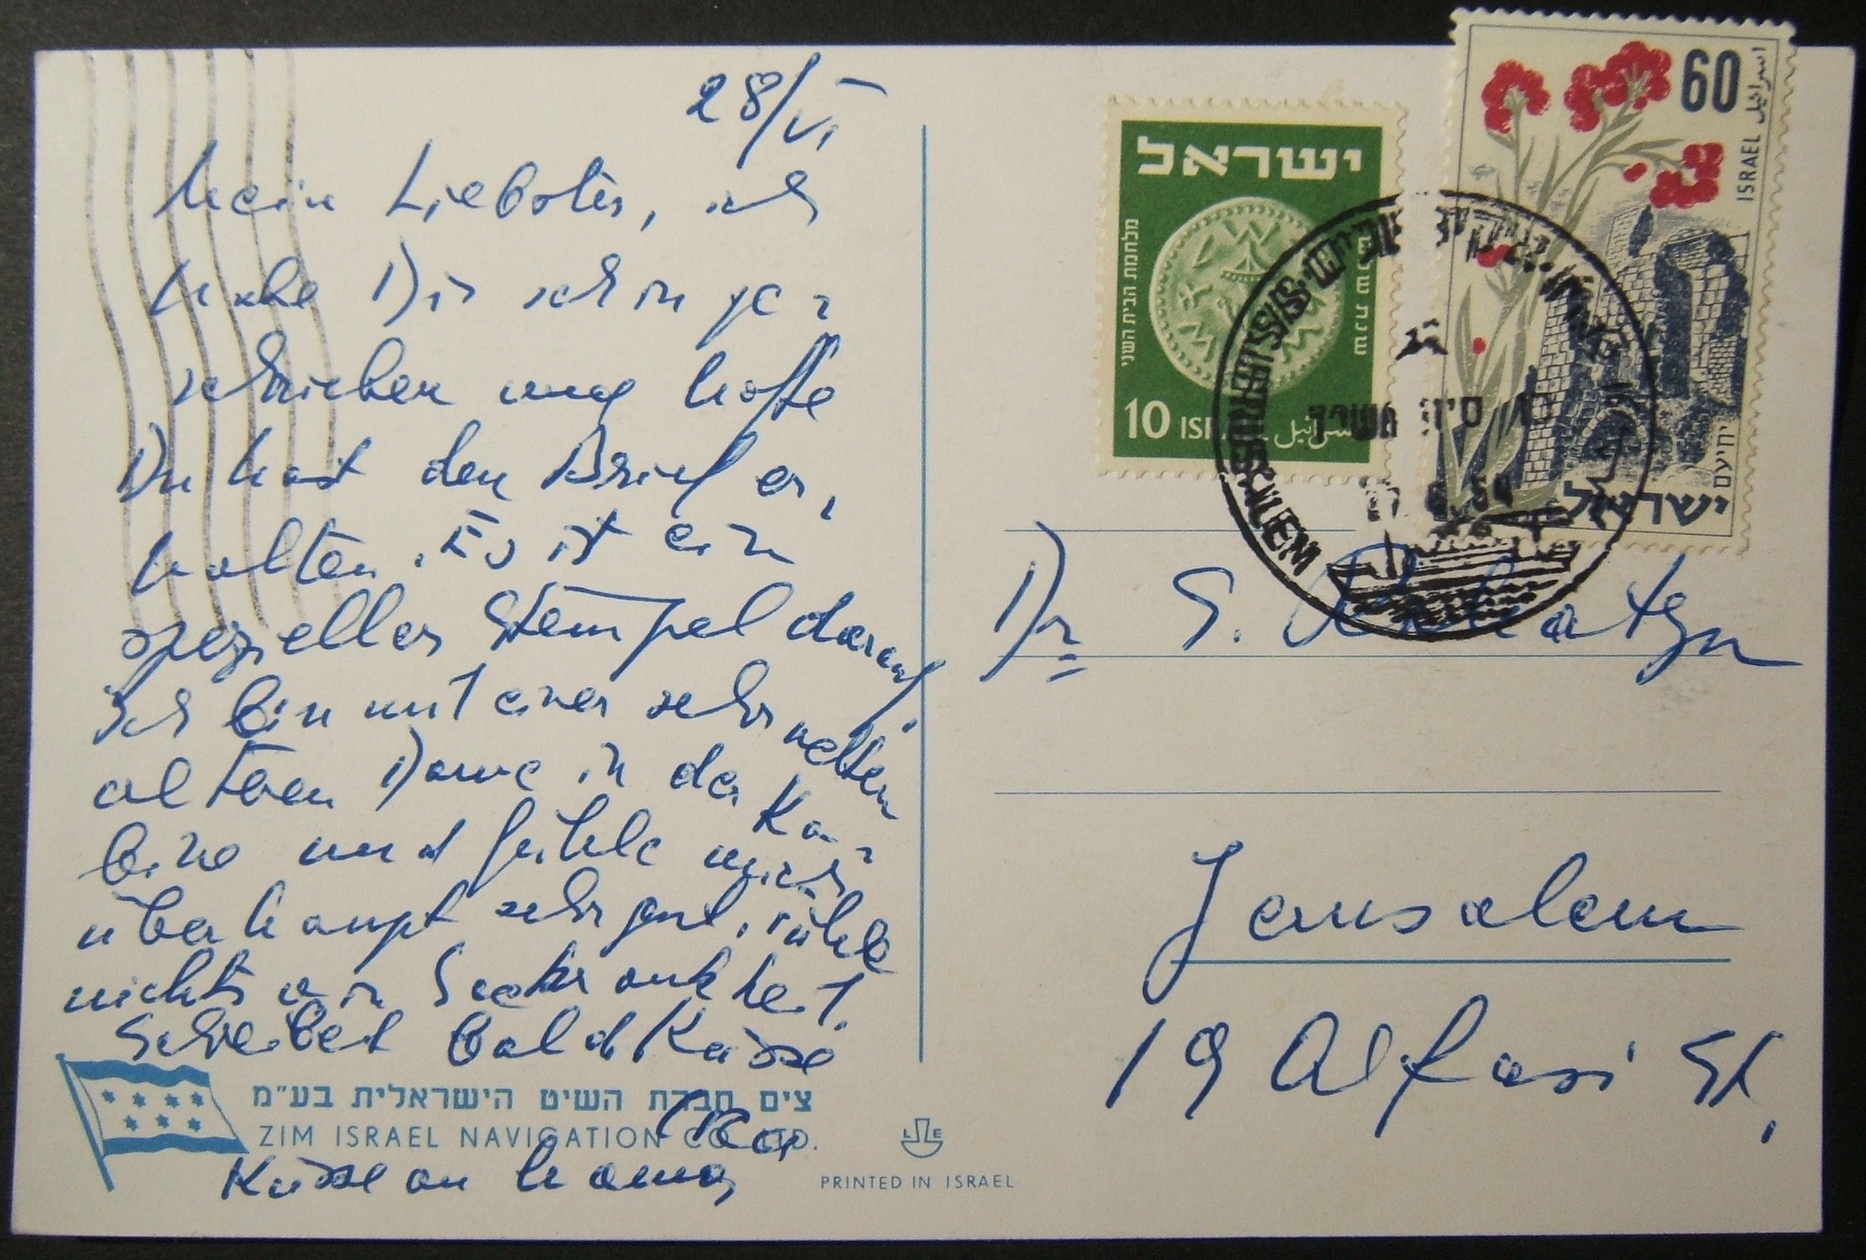 1954 Israeli paquebot sea mail postcard from S/S Jerusalem on 1st day of ship's postmark